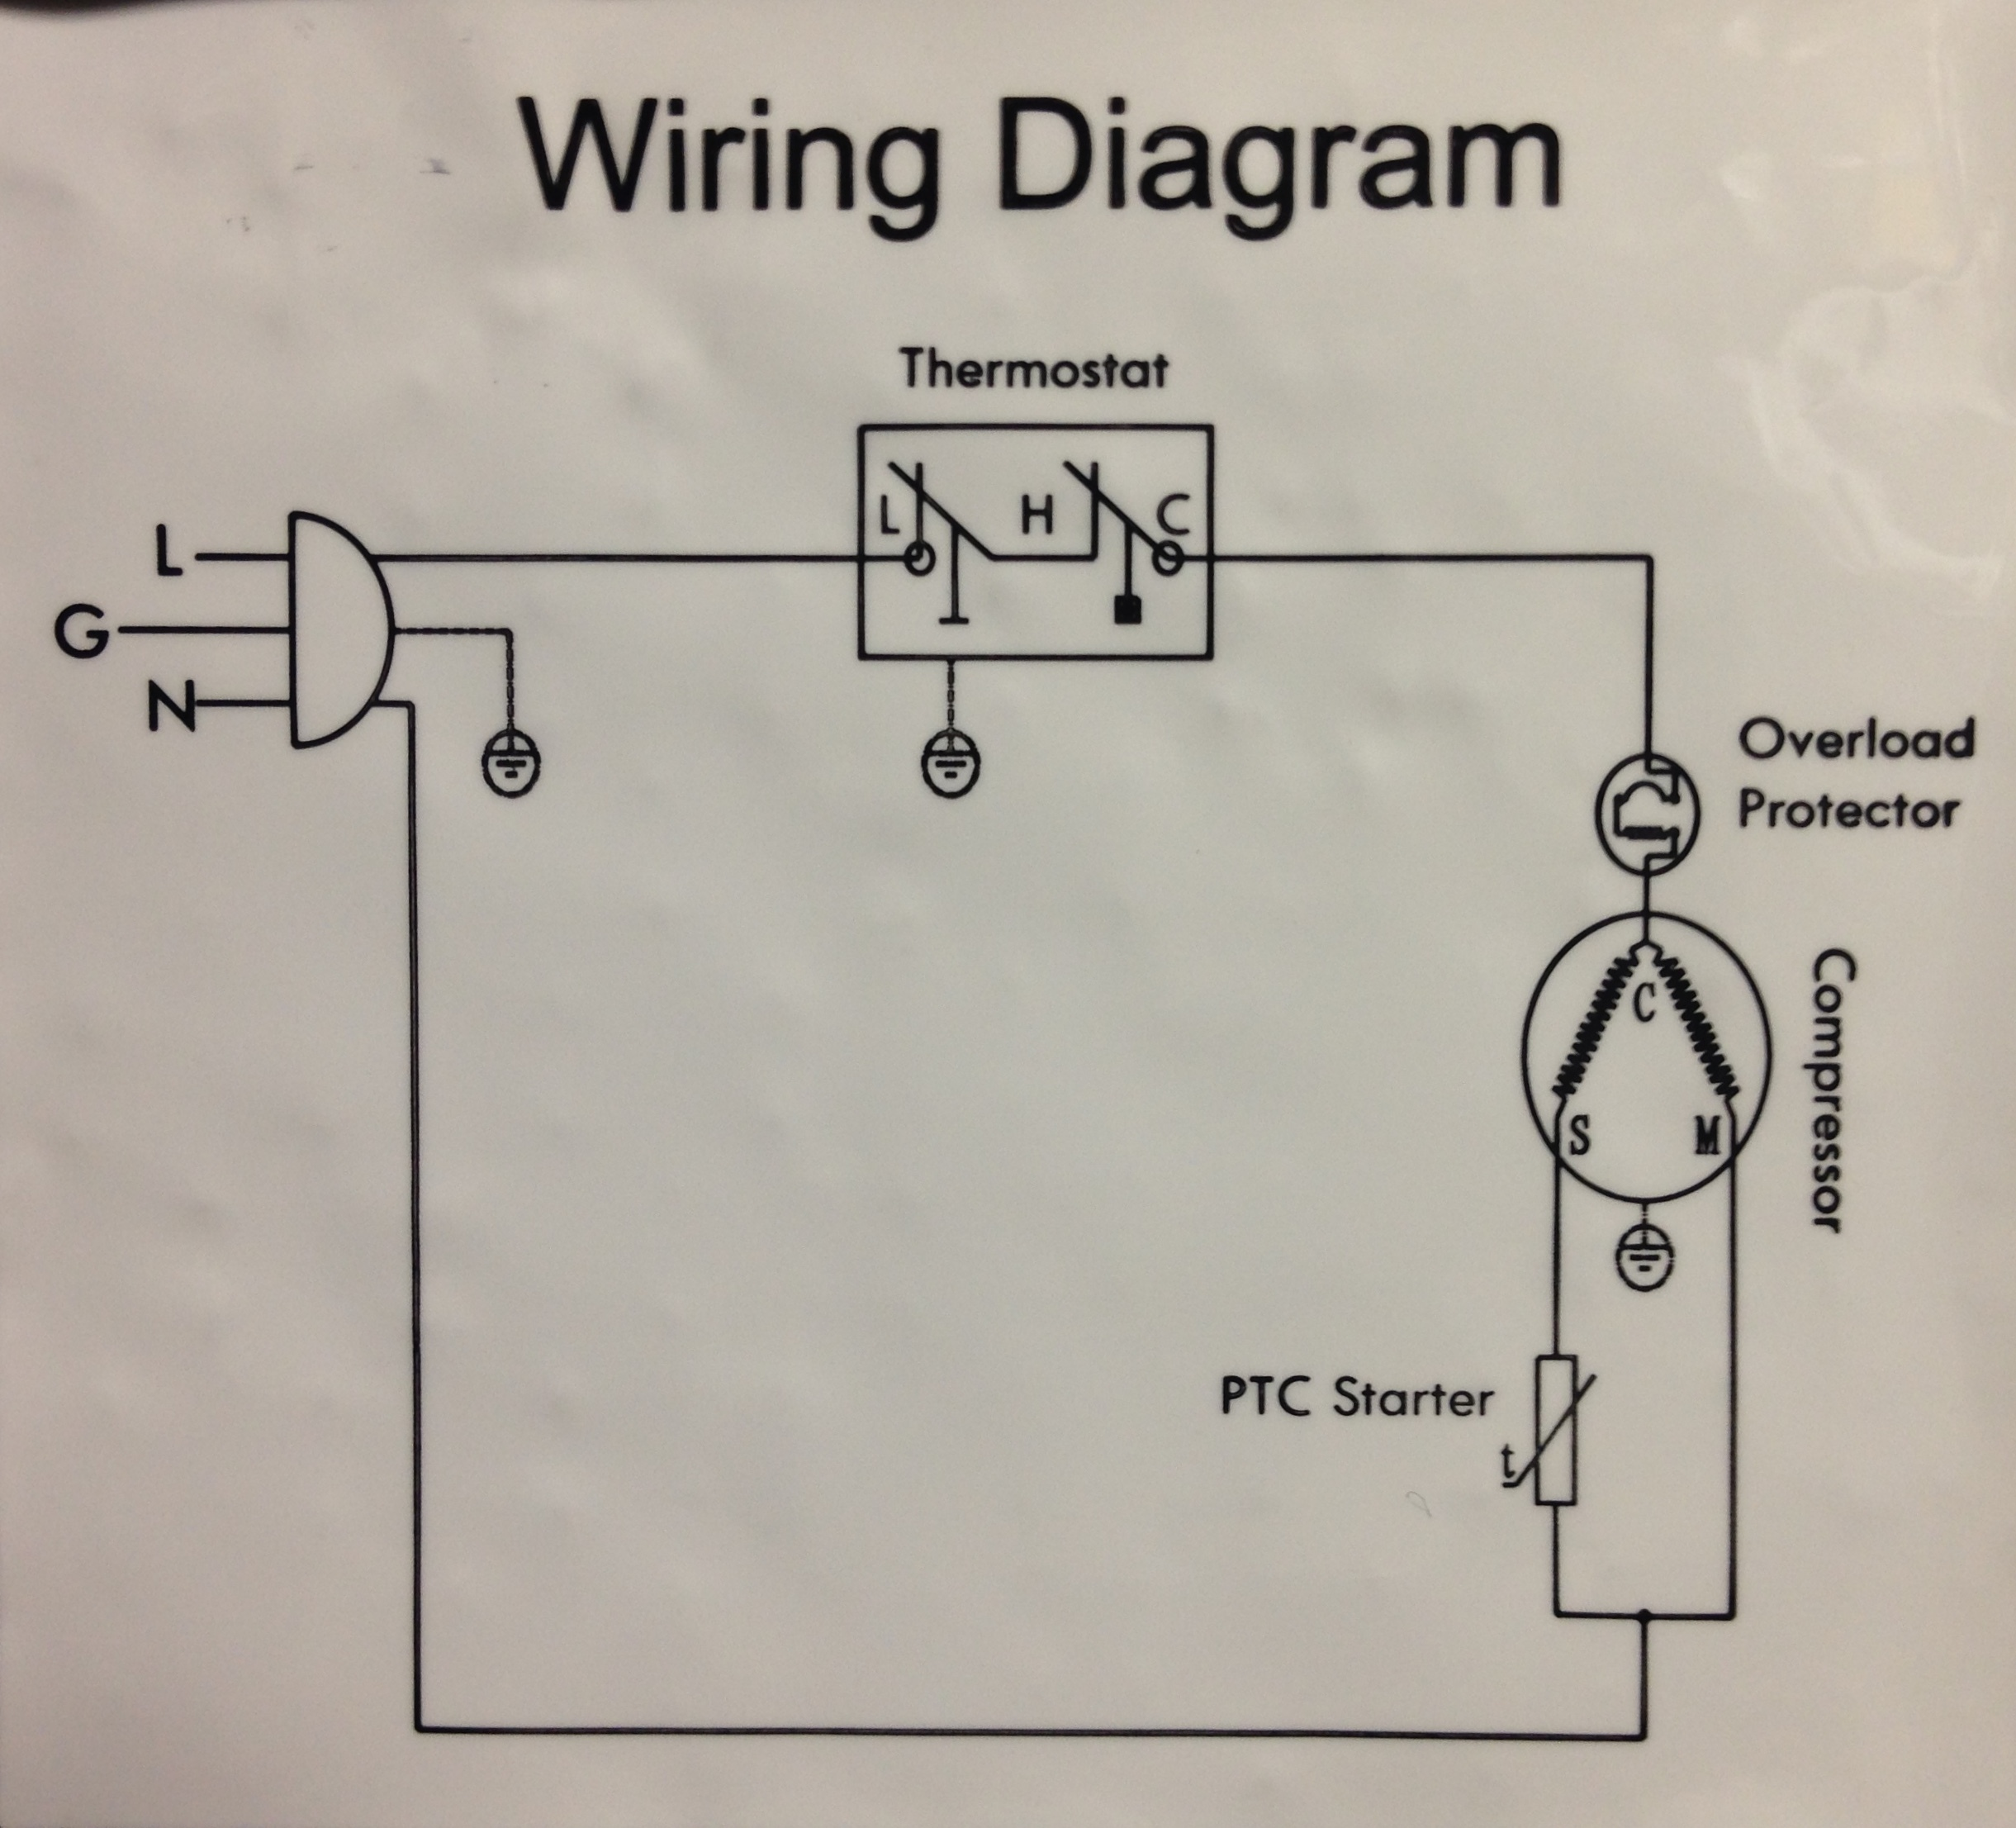 New Build Electronics Newb Diagram Help Fridge Build BrewPi